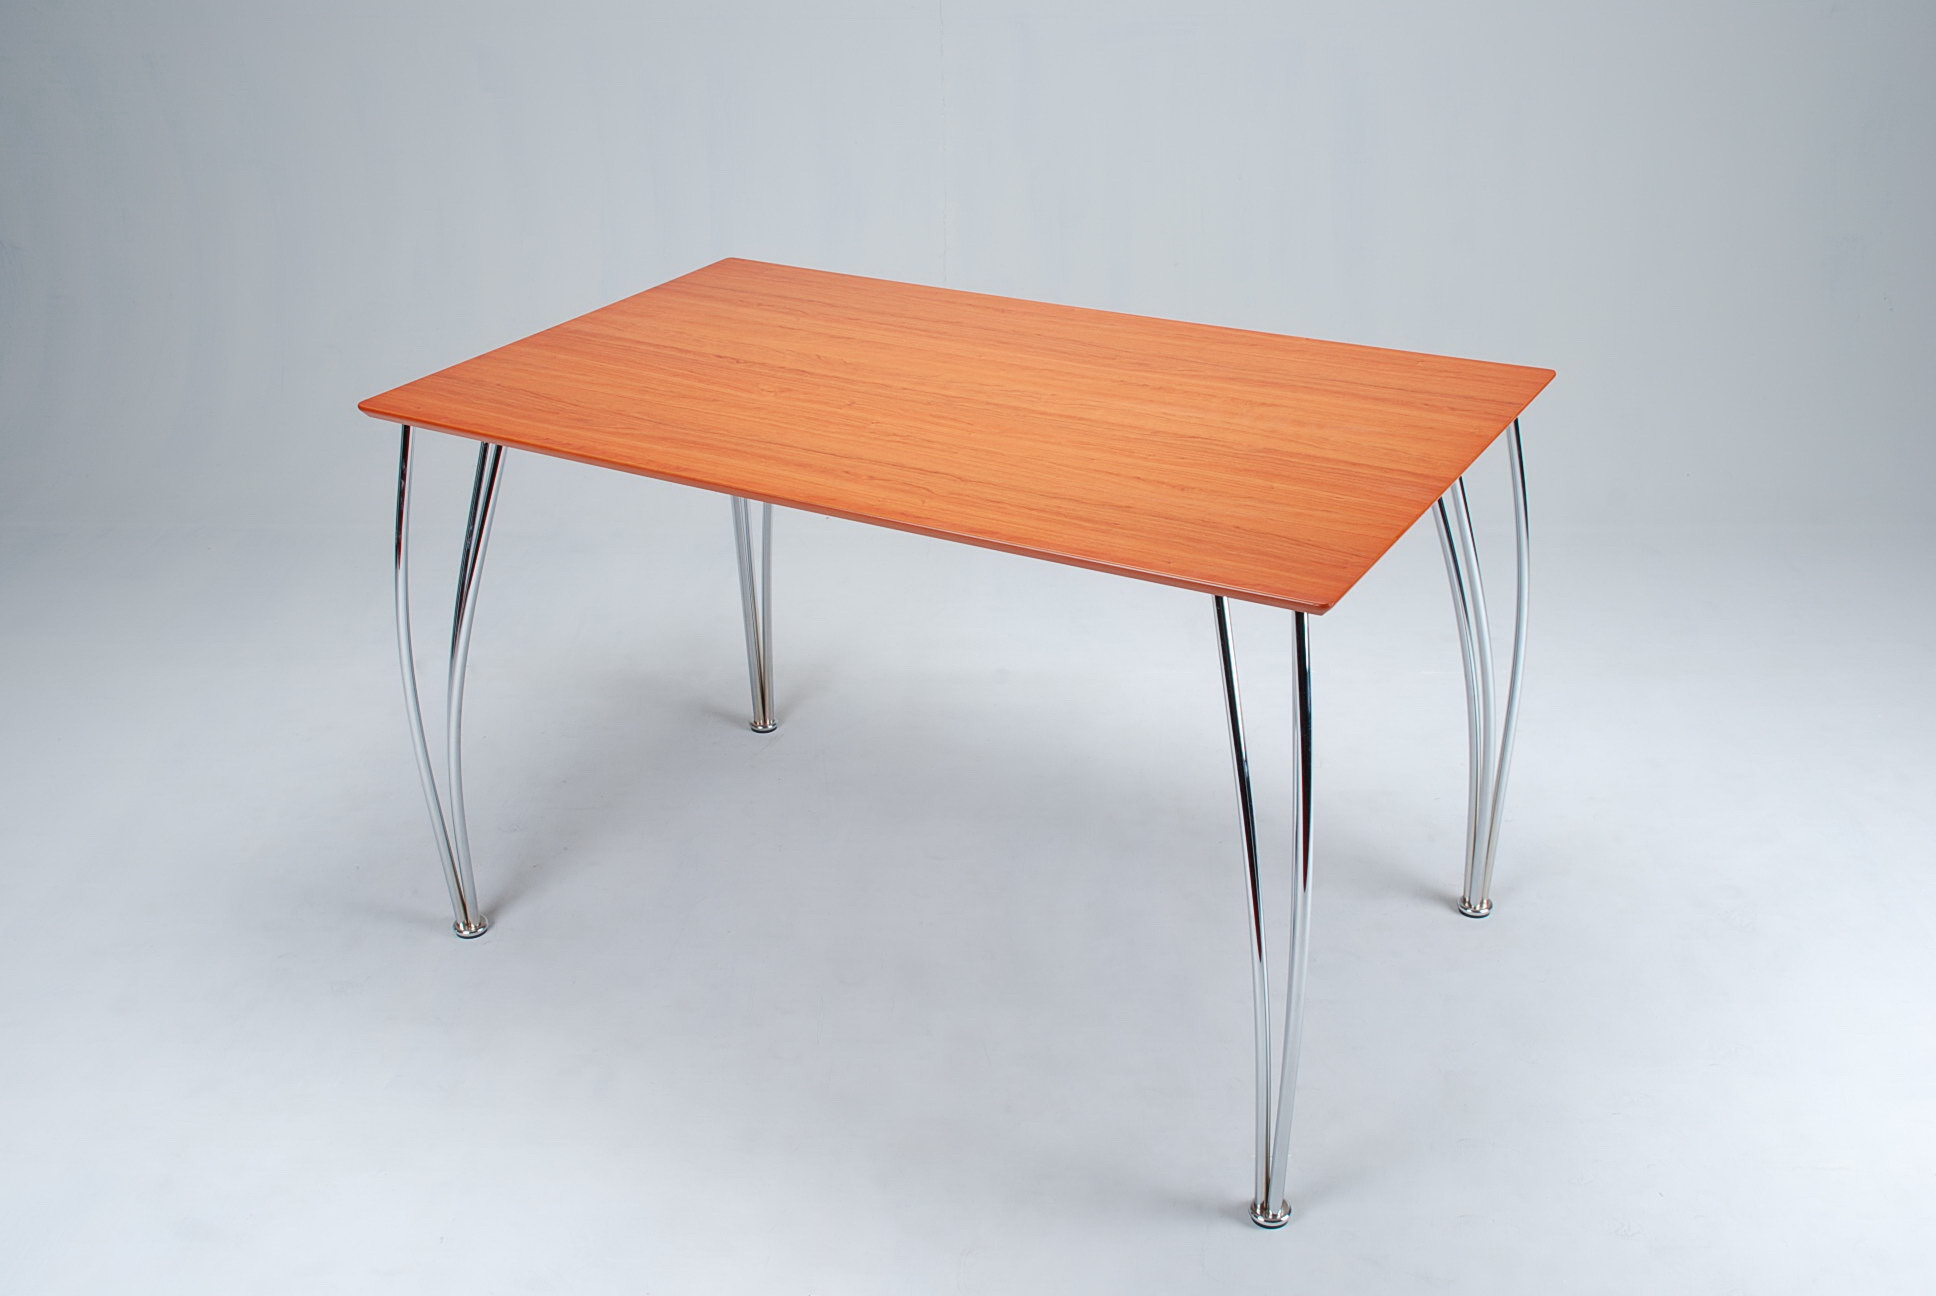 Impressive Wood Top Table with Metal Legs 1936 x 1296 · 183 kB · jpeg